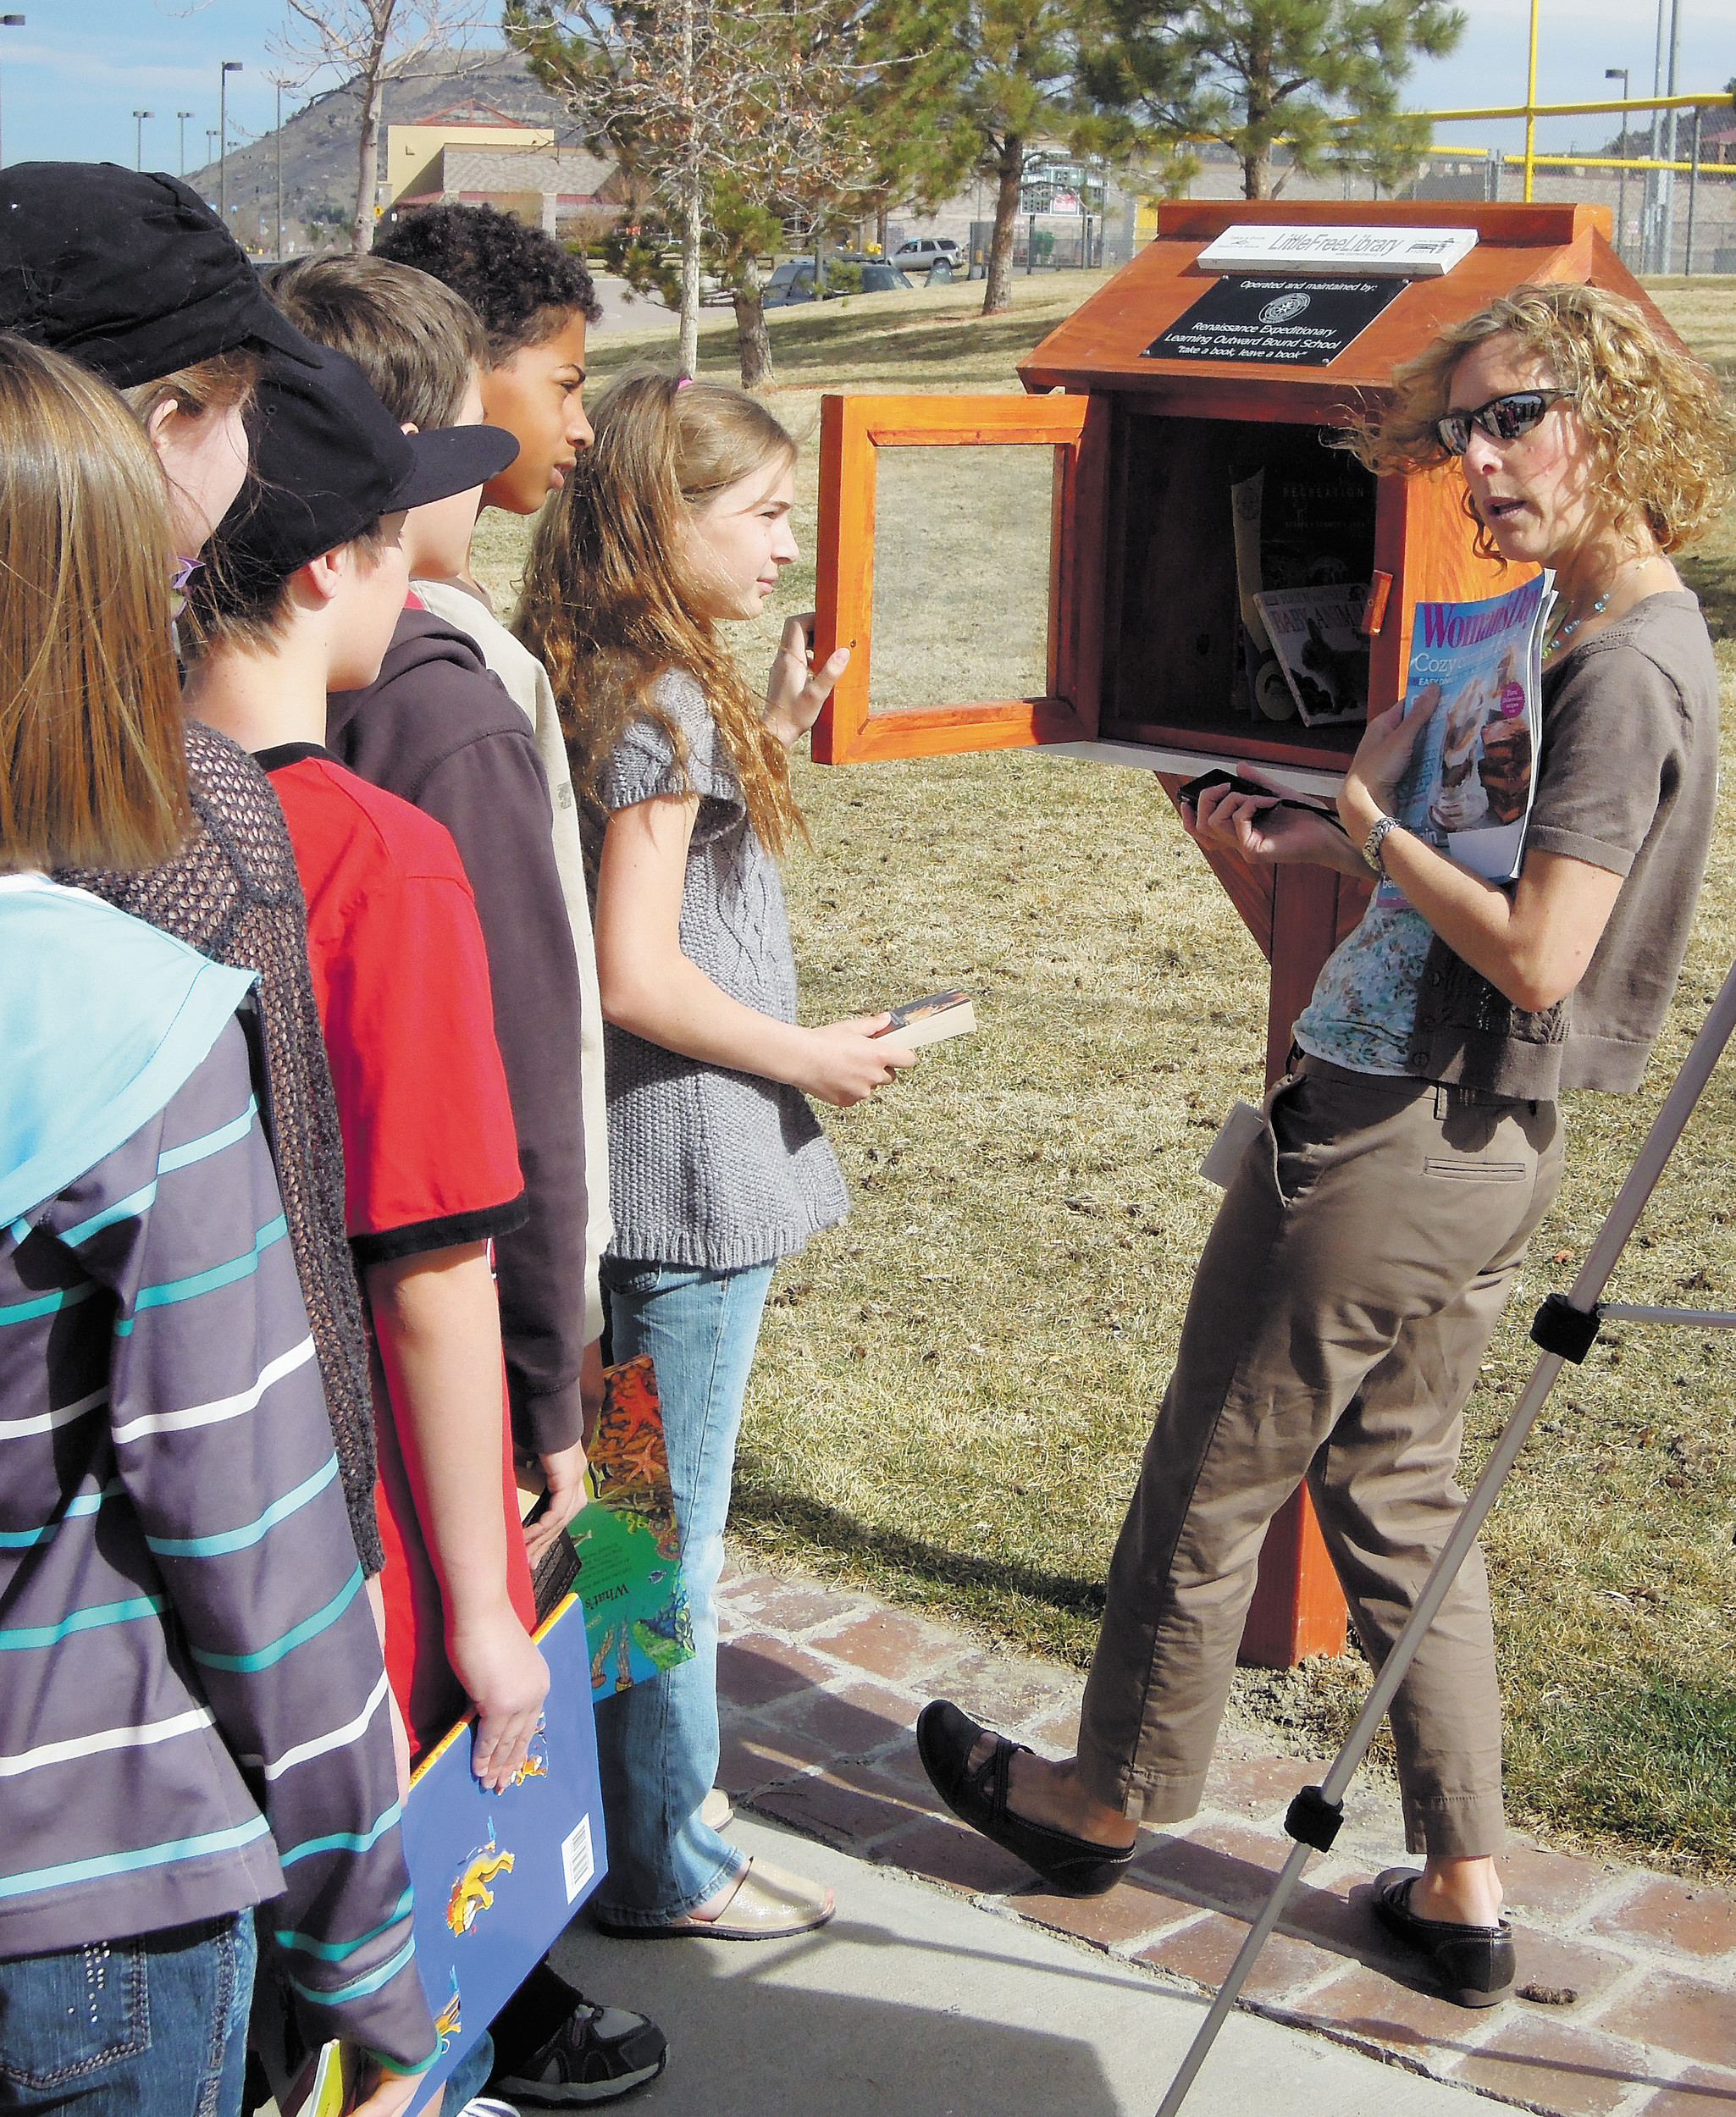 Teacher Diana Hyland demonstrates the newly installed Little Free Library as her students wait to fill it with books. Renaissance Expeditionary School students coordinated the project at Castle Rock's Metzler Ranch Community Park. Photo by Jane Reuter